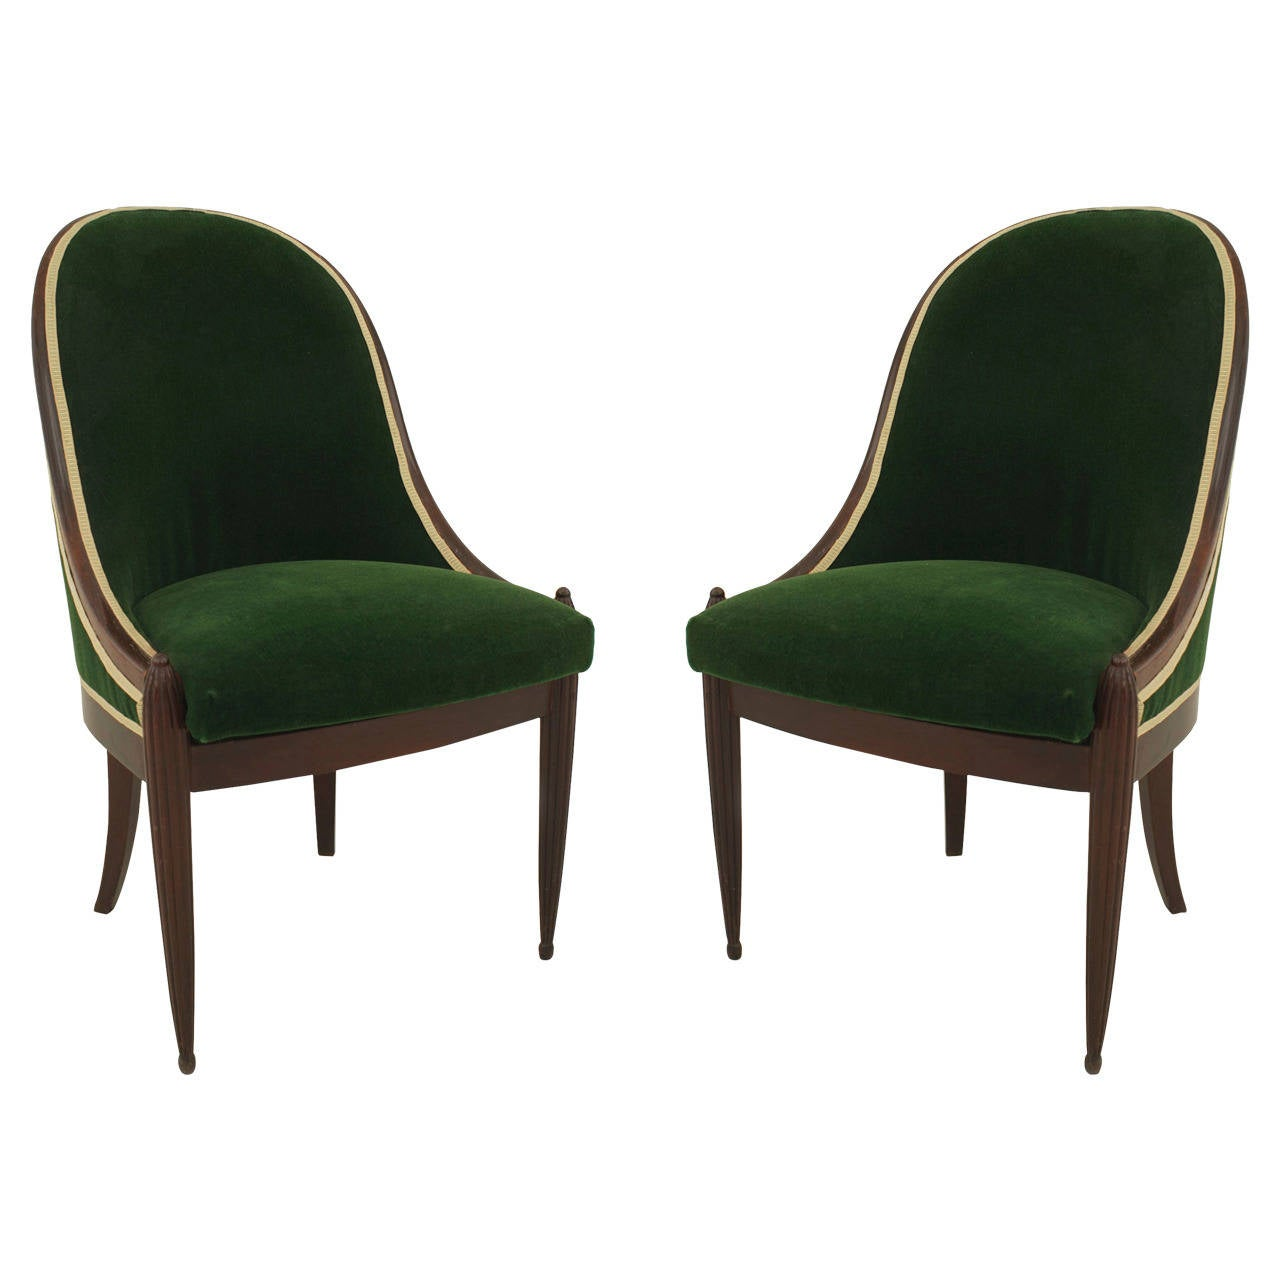 Pair of French Art Deco Green Velvet-Upholstered Mahogany Side Chairs For Sale